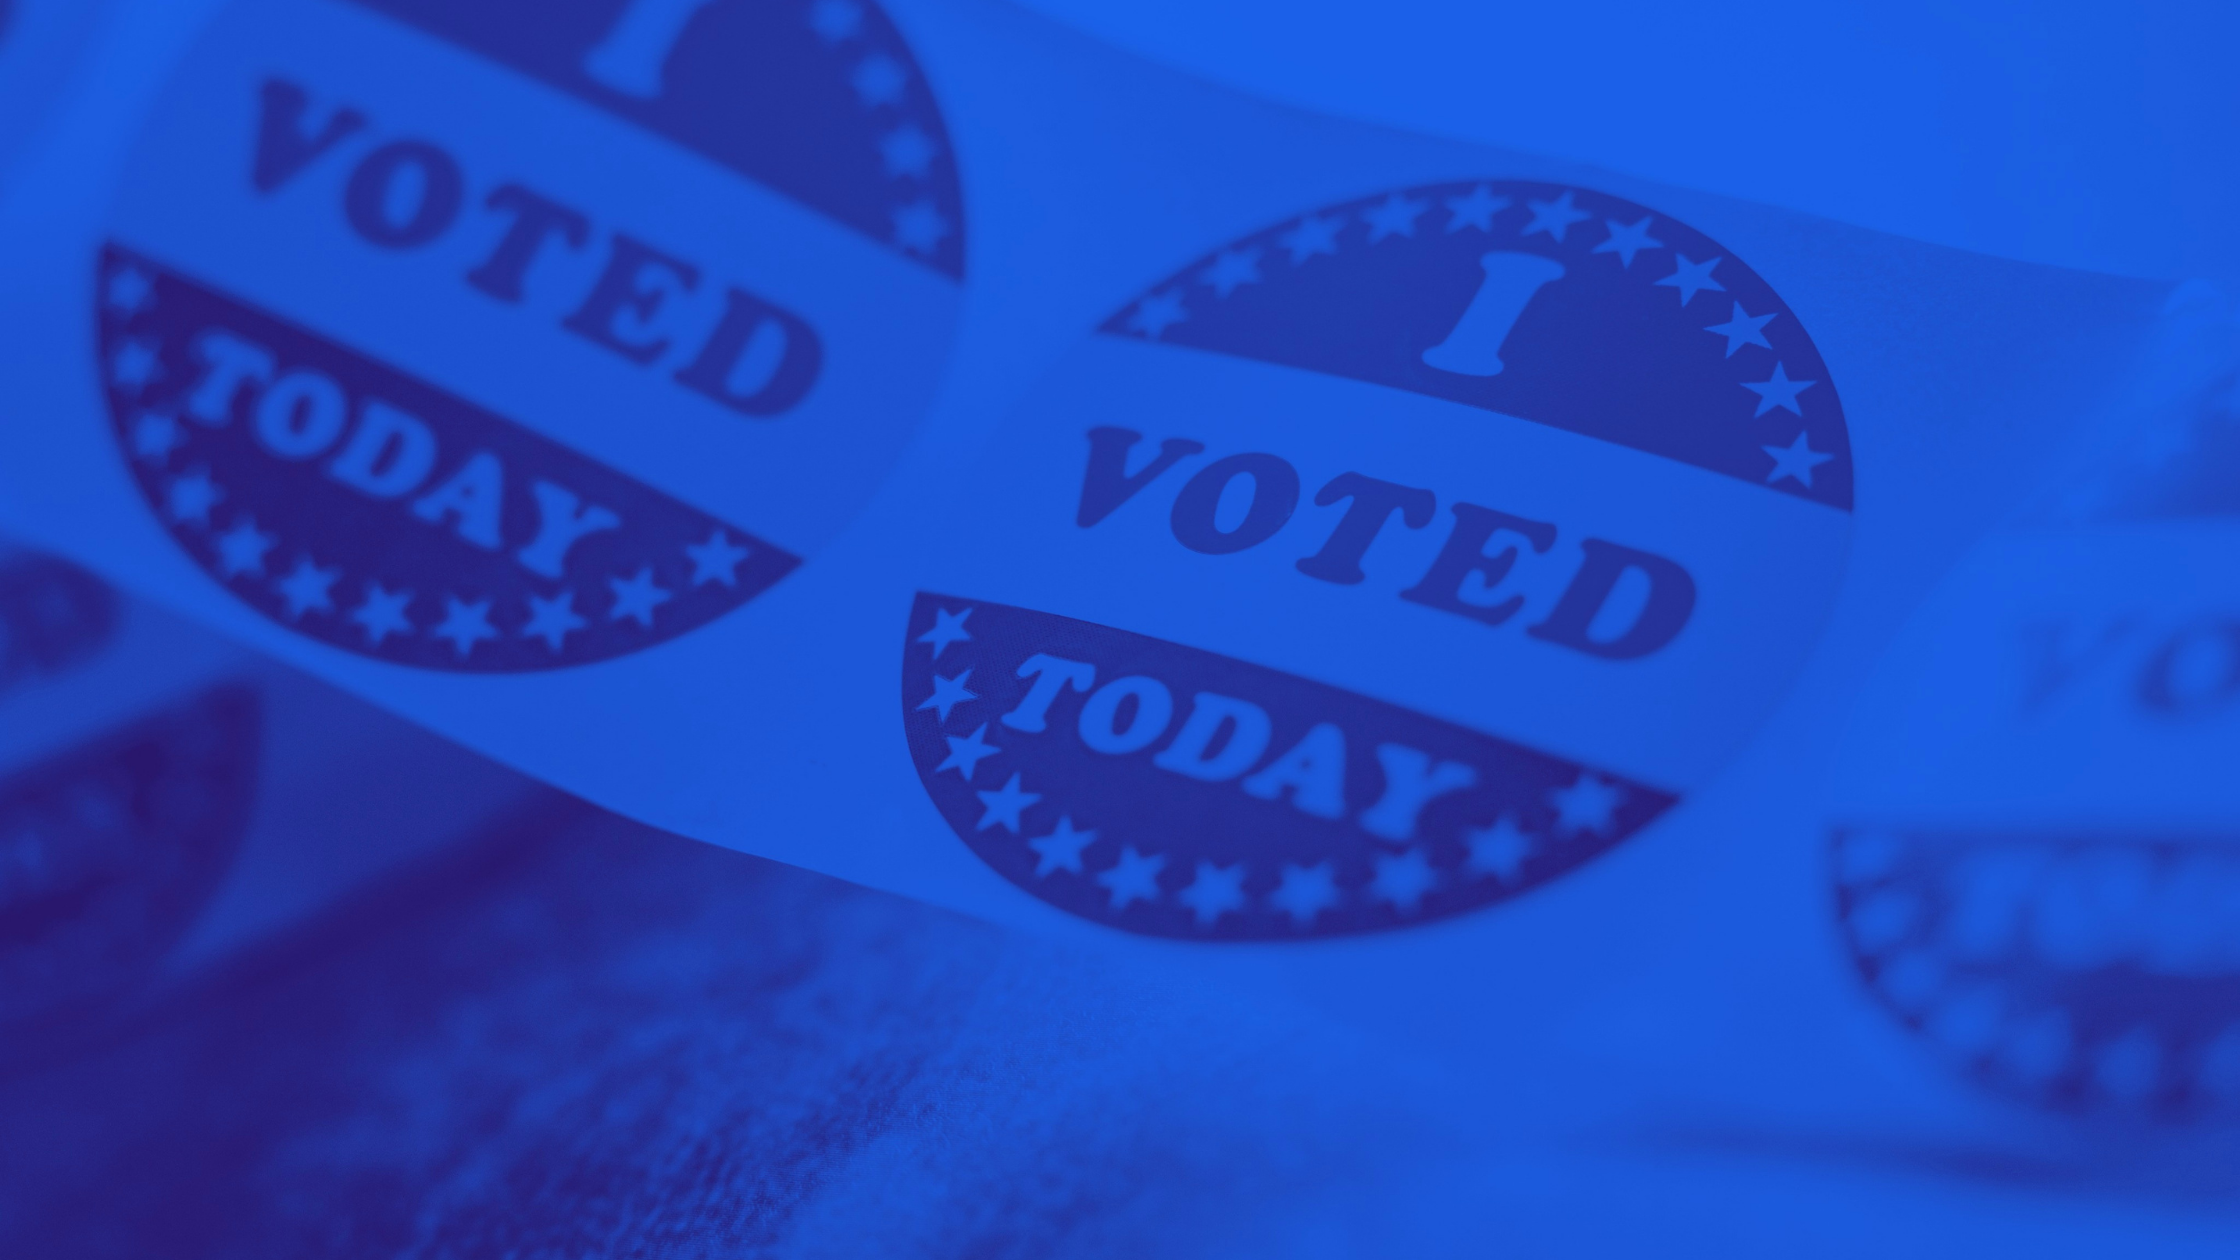 CharterNation: Your Vote Can Make a Big Difference Up & Down the Ballot